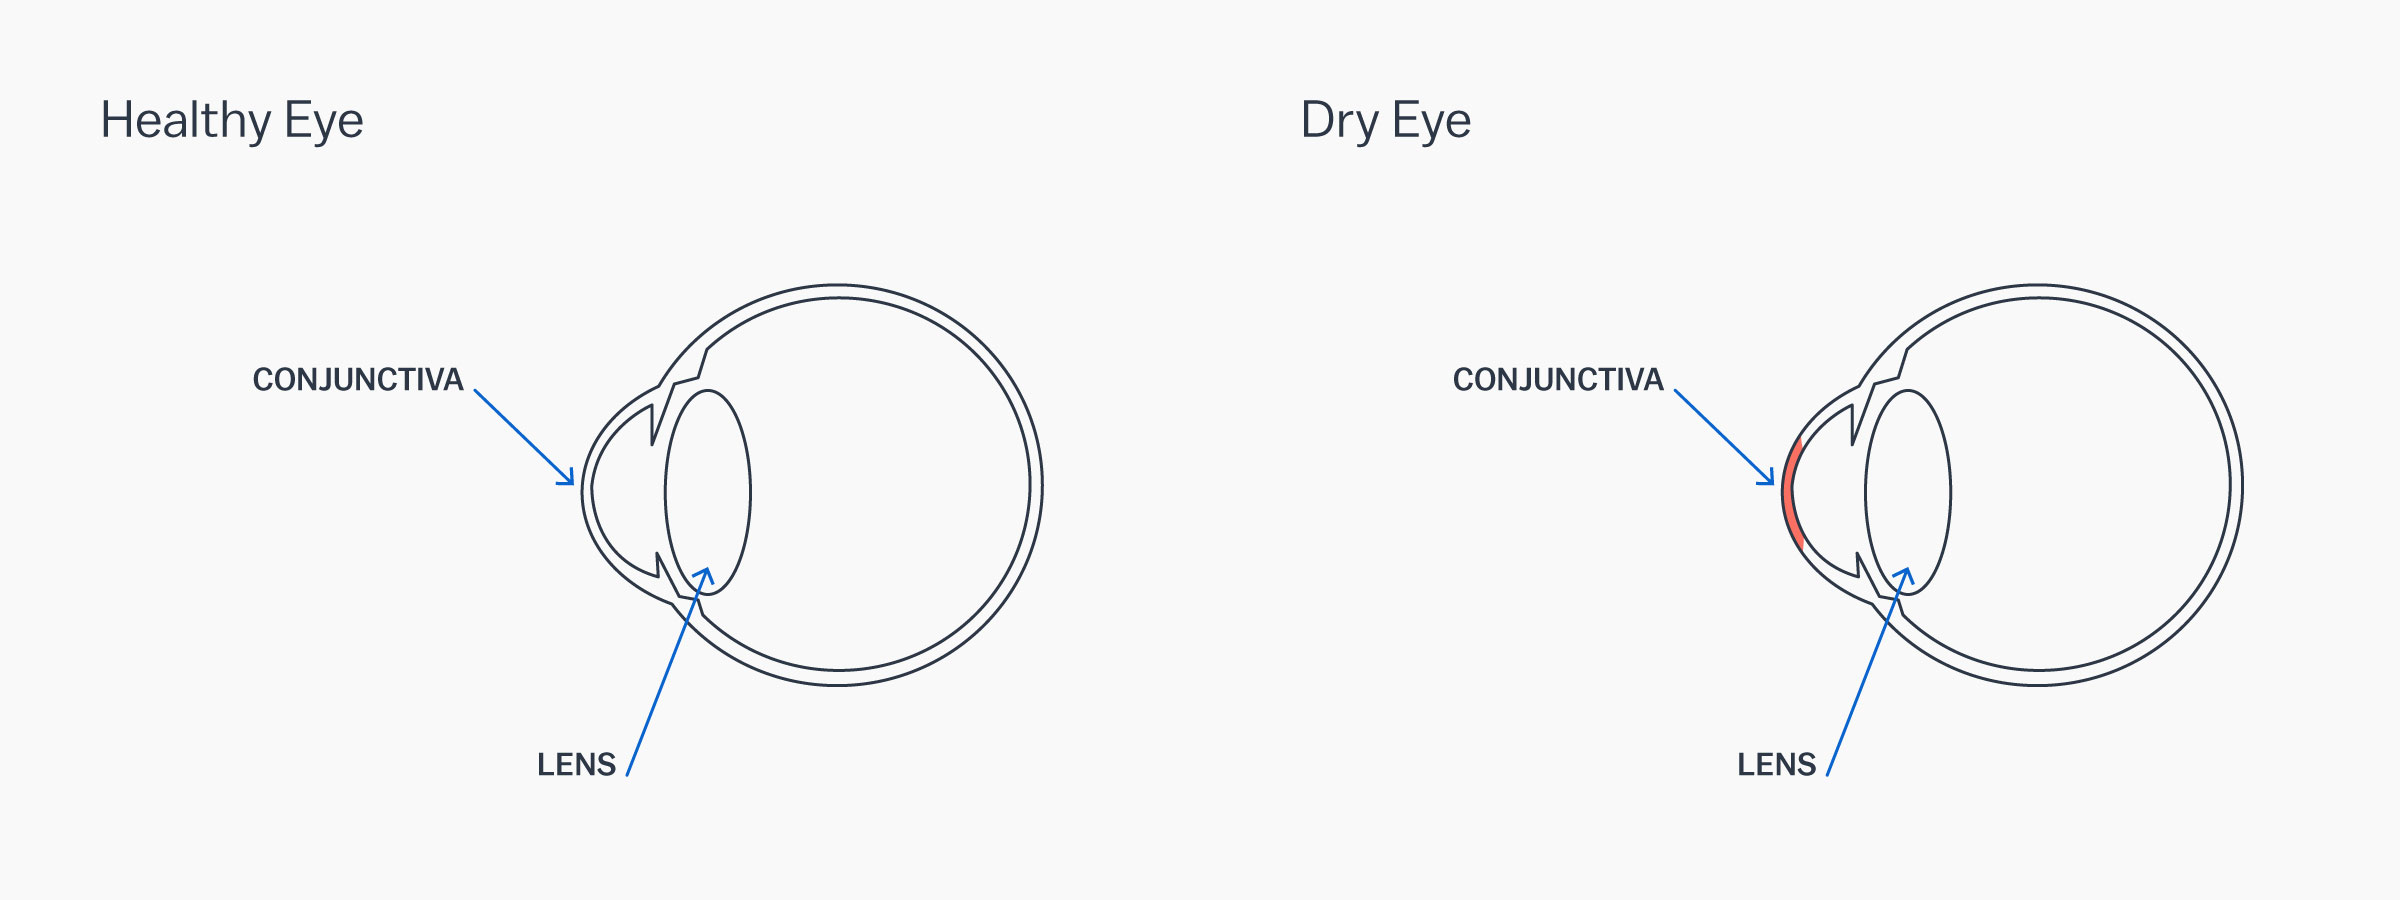 A graphic showing how dry eye syndrome affects the eye